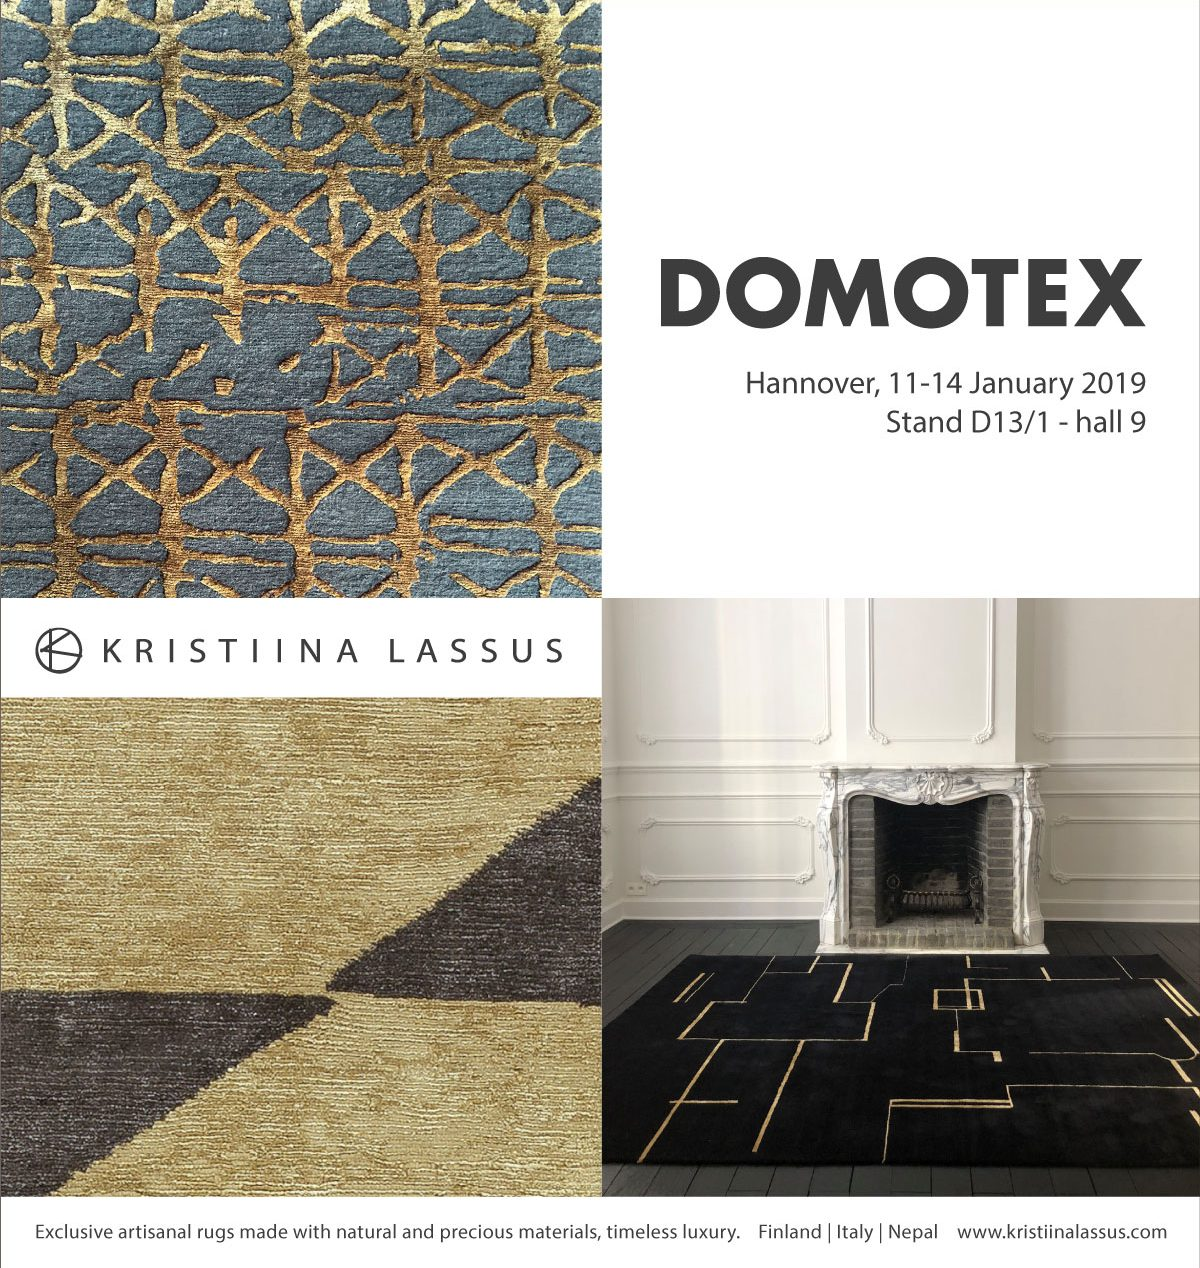 Rugs-Kristiina-Lassus-at-Domotex-2019_web1200_211218sb